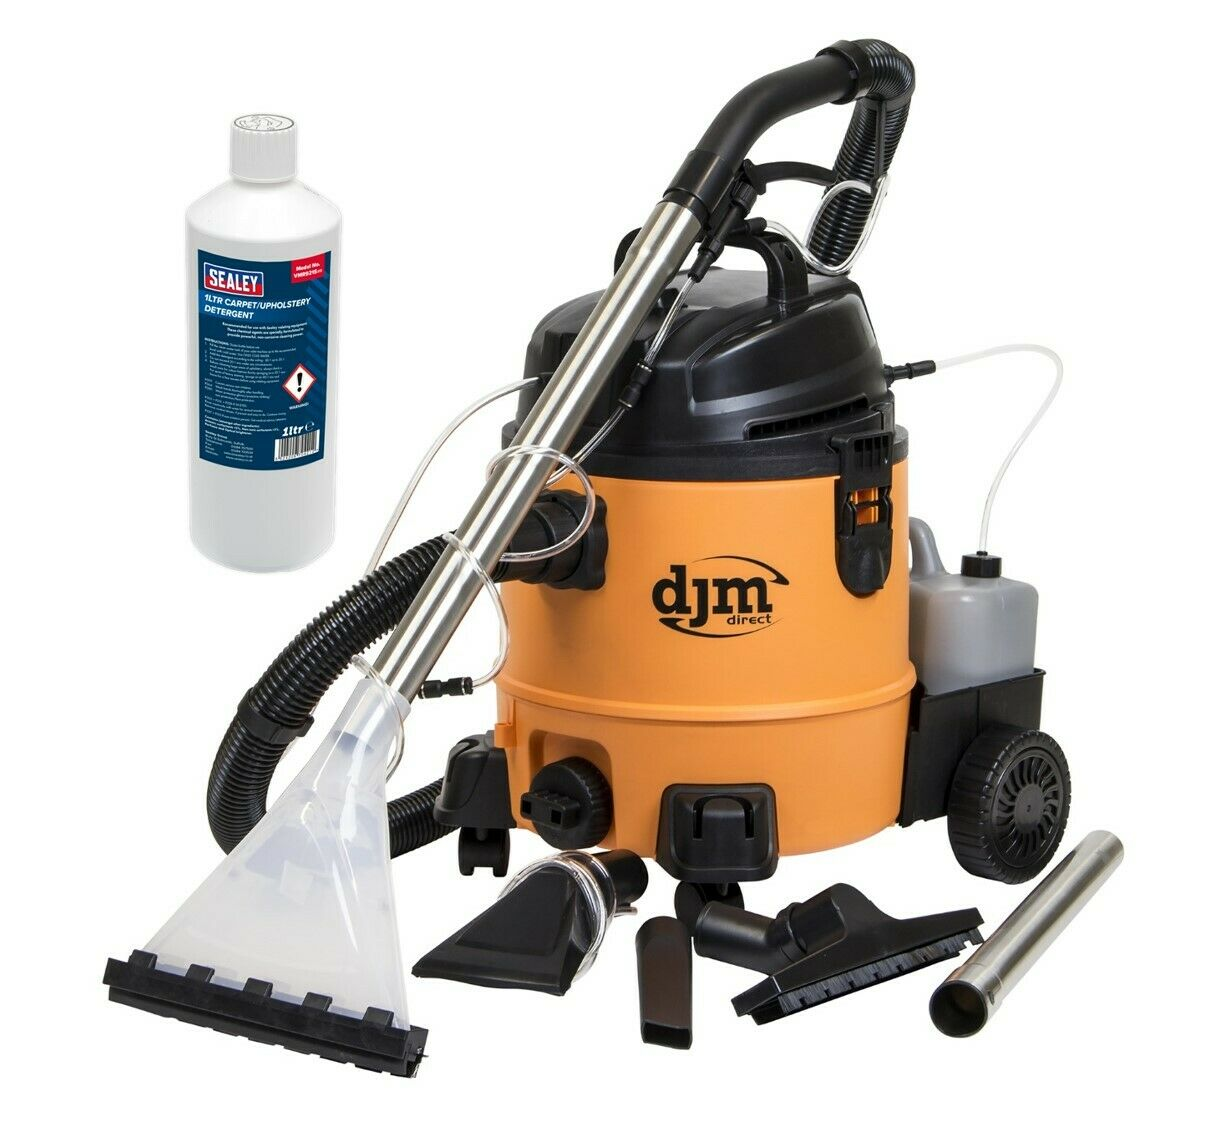 djm home carpet upholstery washer cleaner vacuum valeting vac machine access. Black Bedroom Furniture Sets. Home Design Ideas